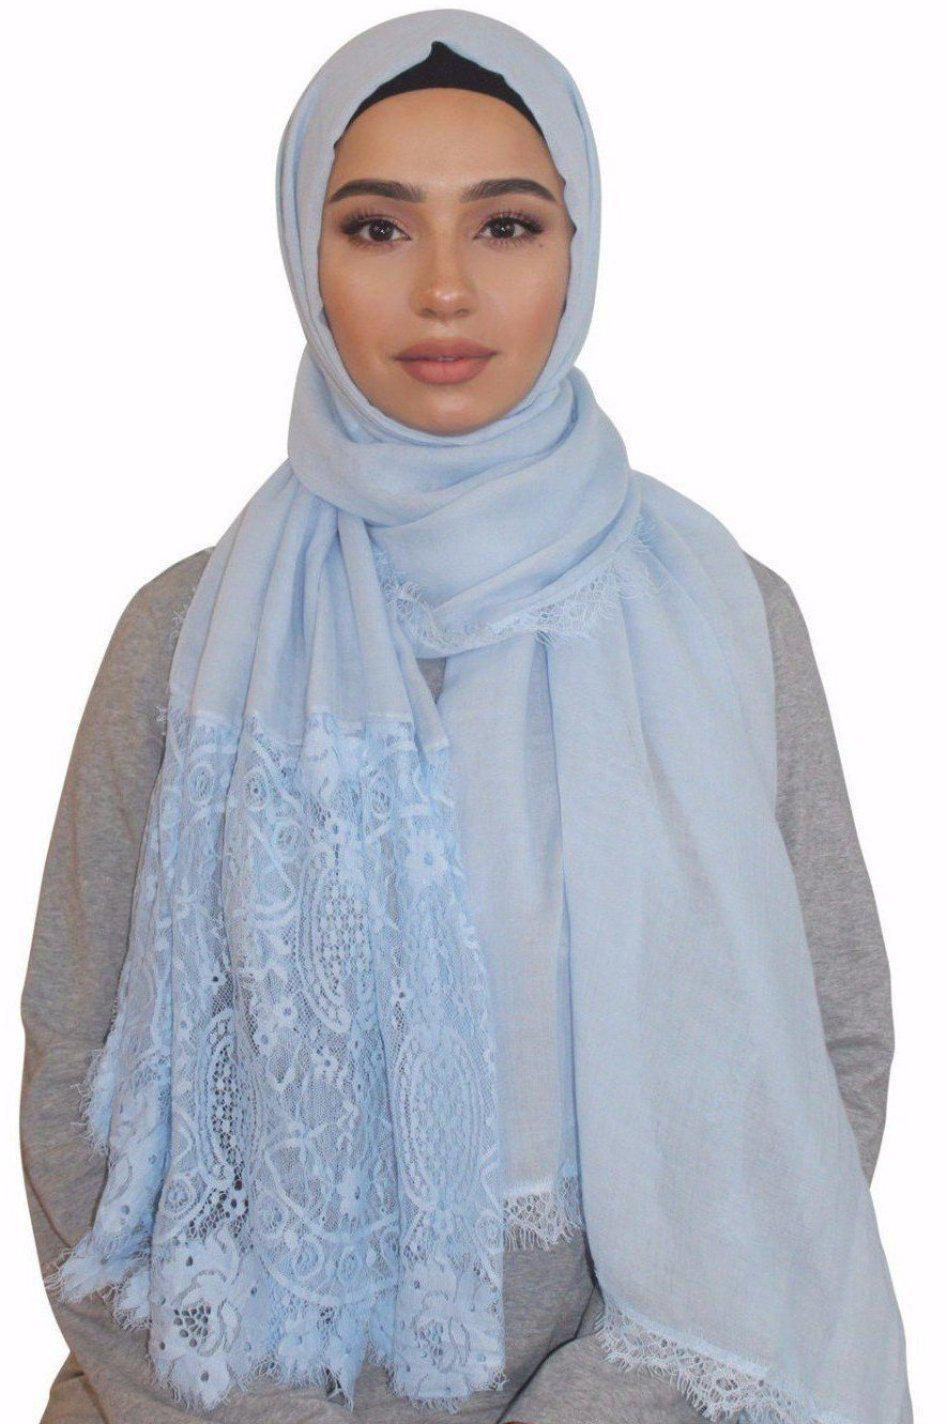 Ice Blue Lace Trim Cotton Hijab-Clearance - Abaya, Hijabs, Jilbabs, on sale now at UrbanModesty.com